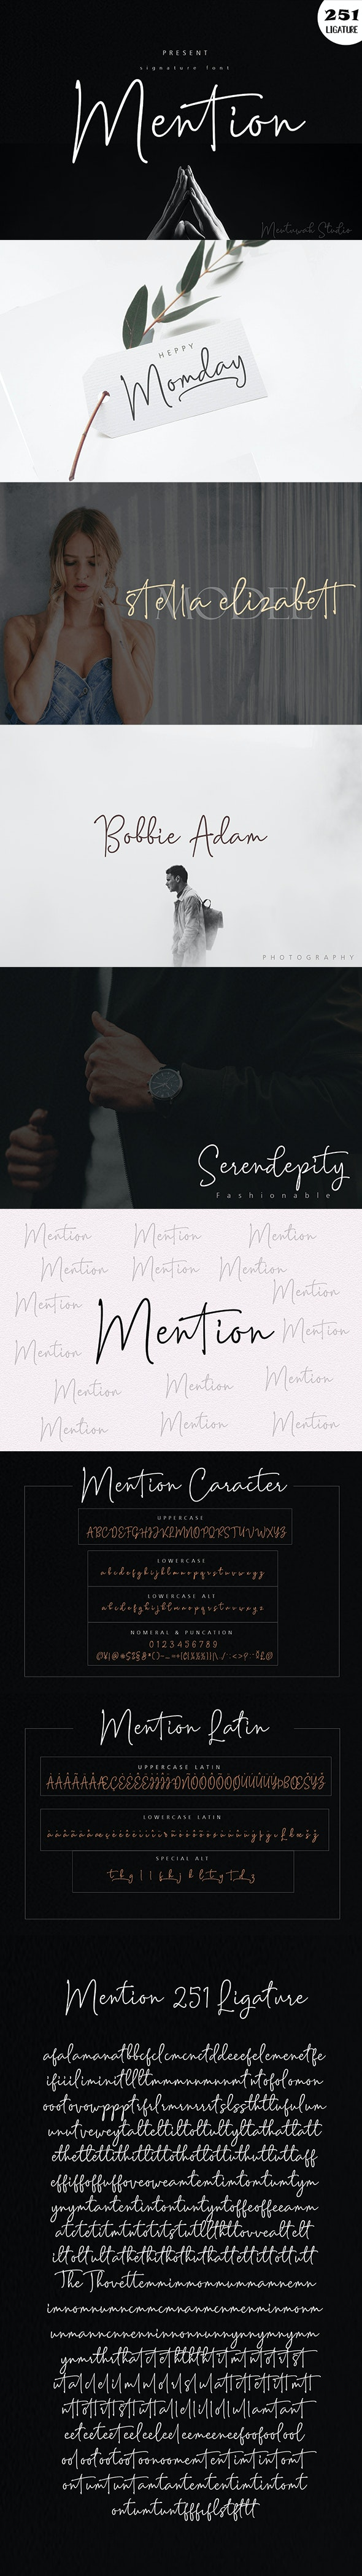 Mention Signature And 251 Ligature - Hand-writing Script